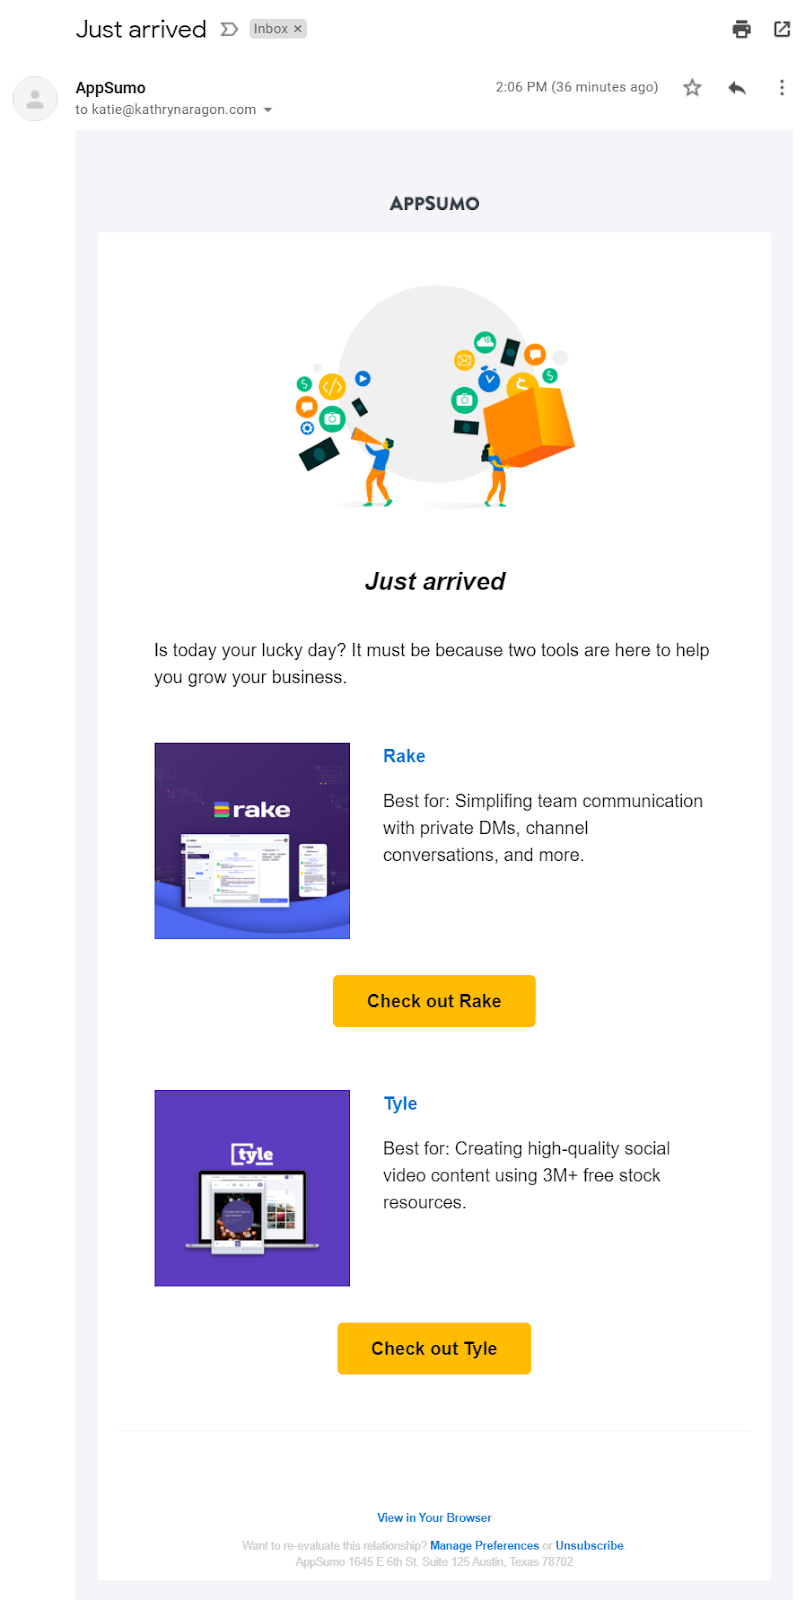 Marketing email from Appsumo